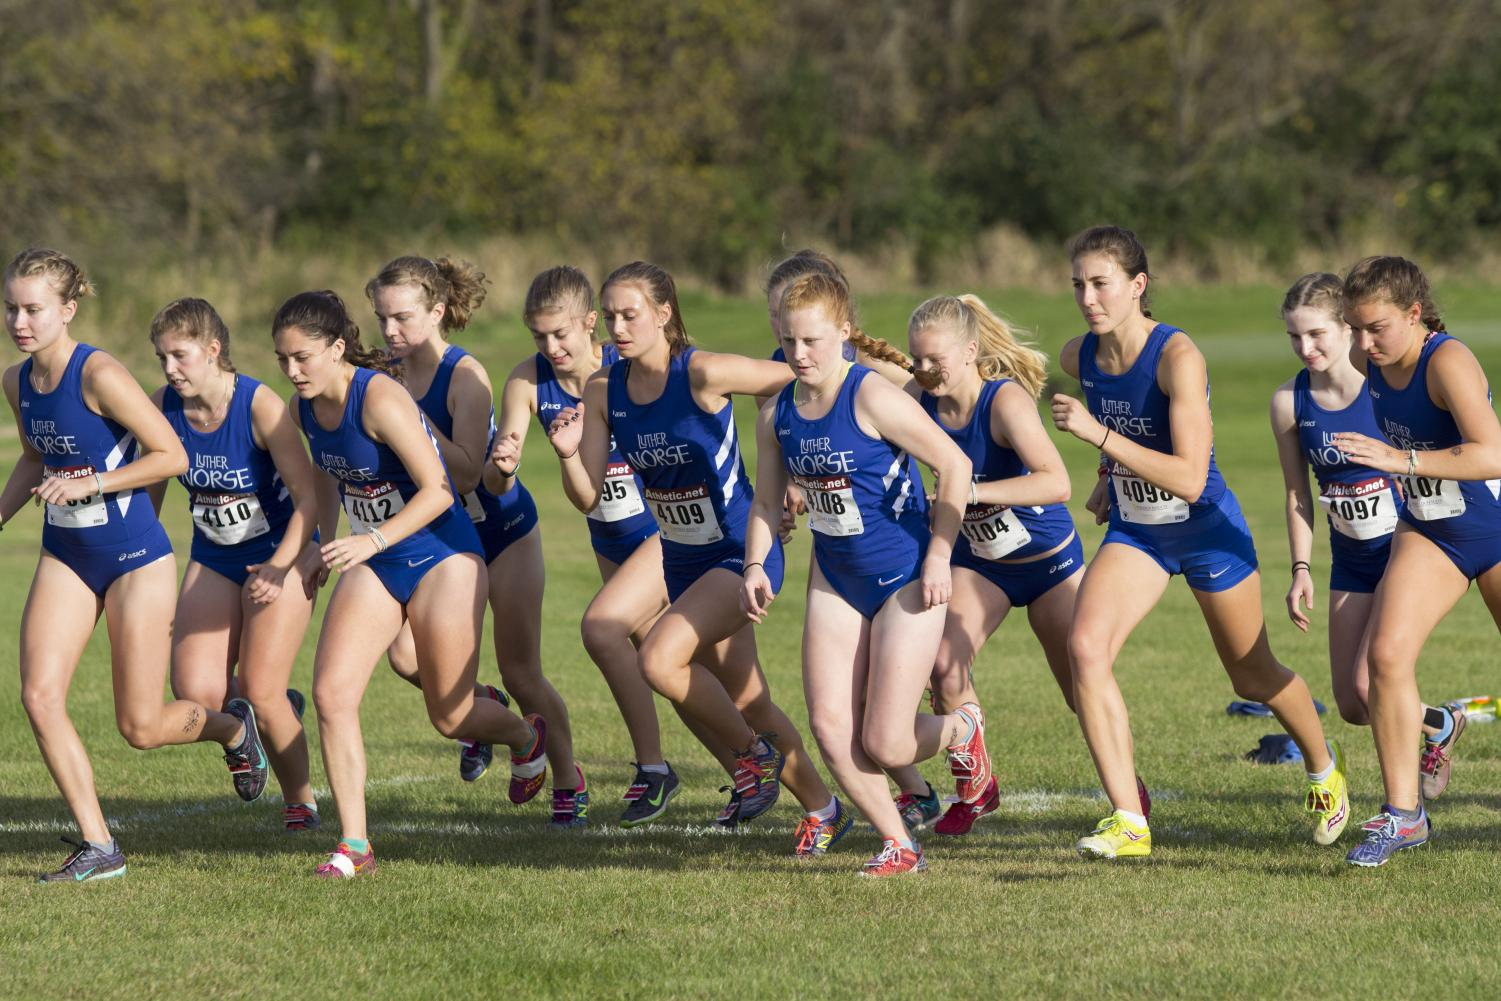 The women's cross country team starts a race during their meet against LaCrosse.